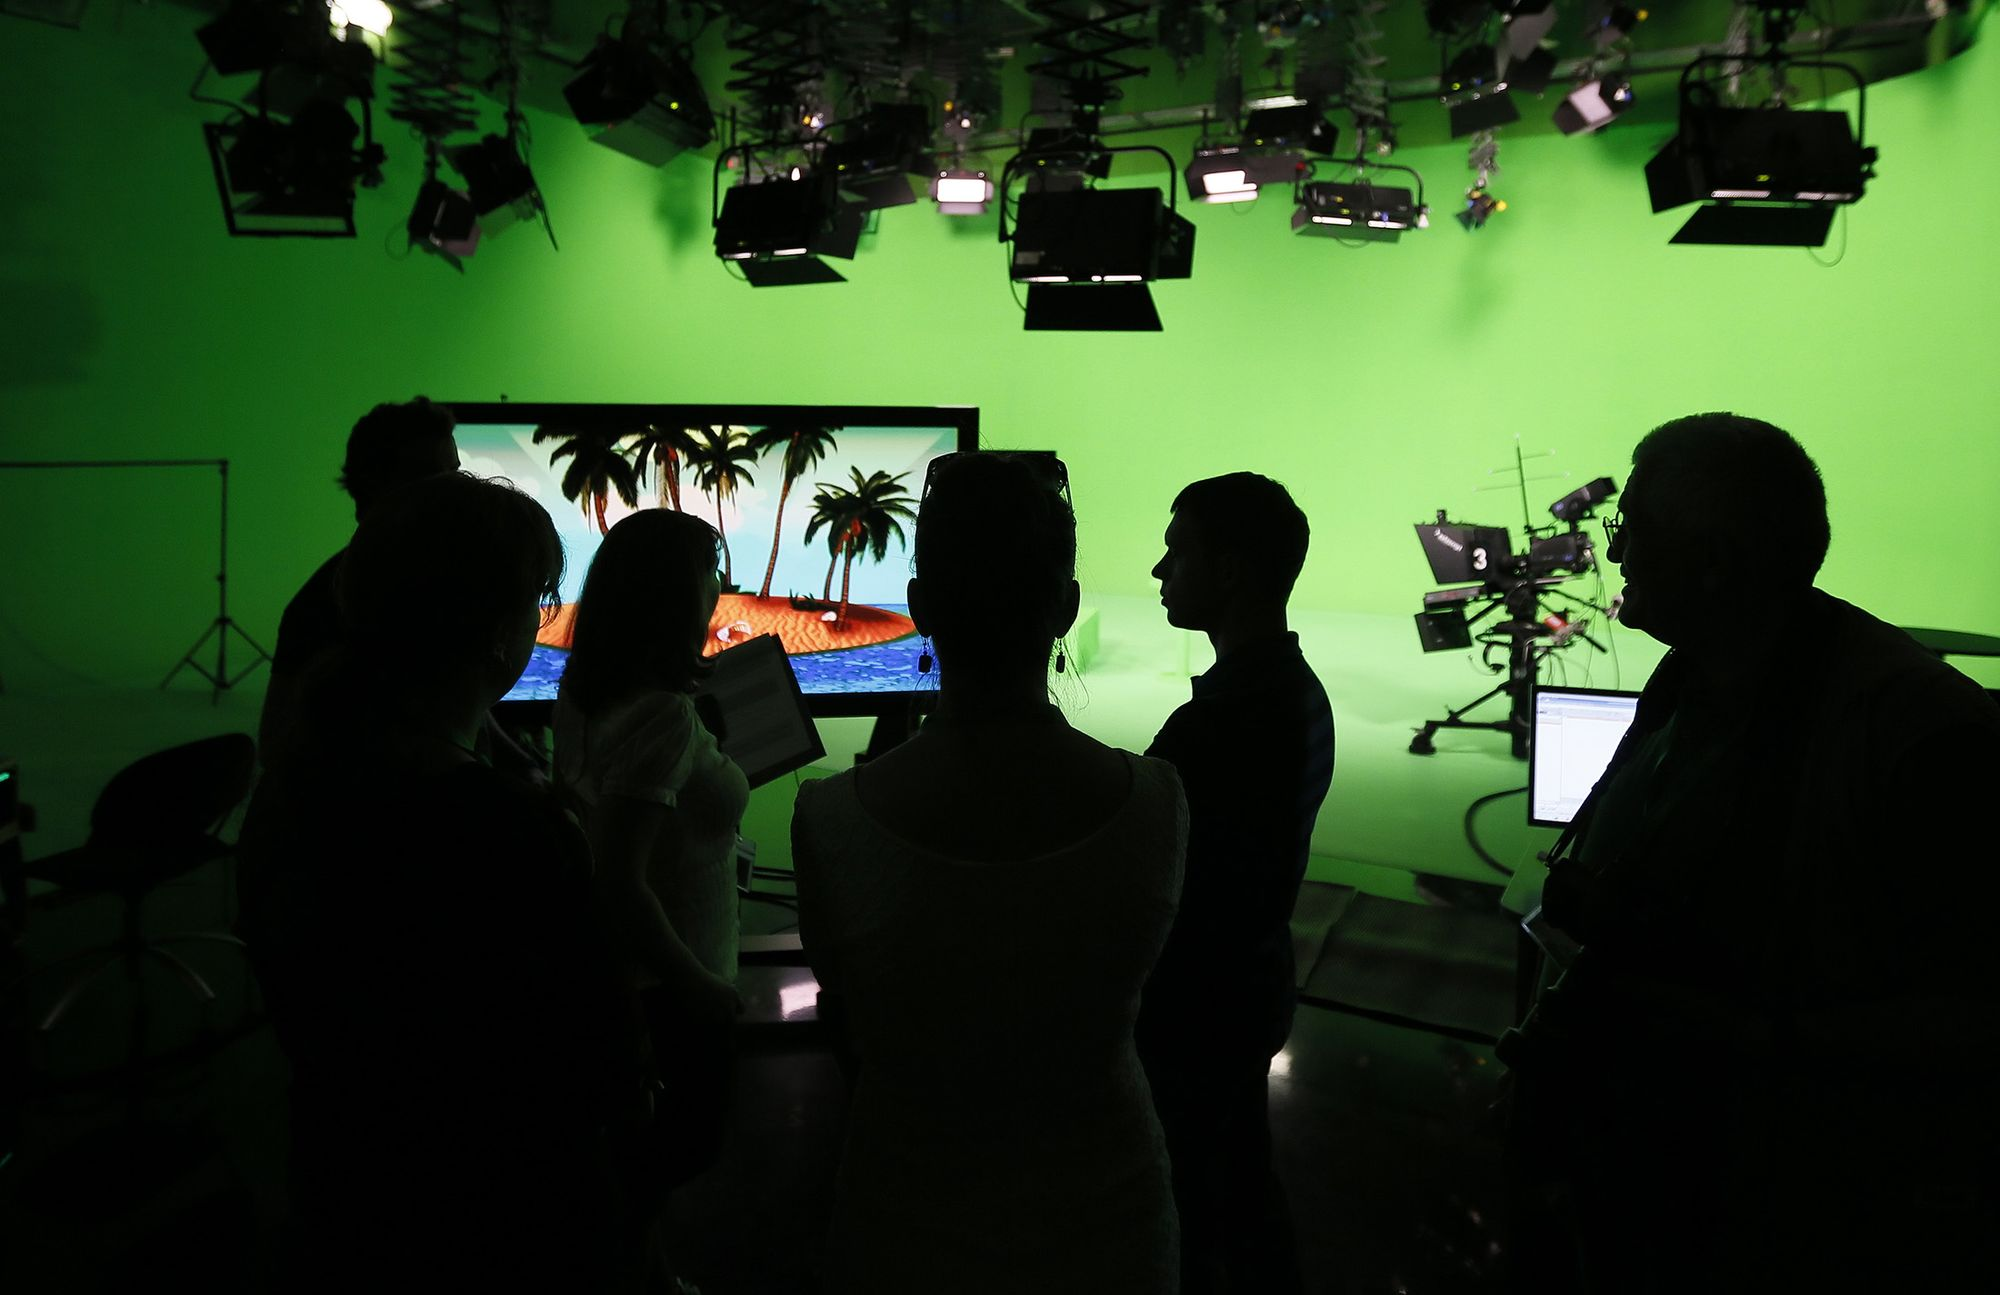 Russian News Service RT to Go Off the Air in the Washington Area